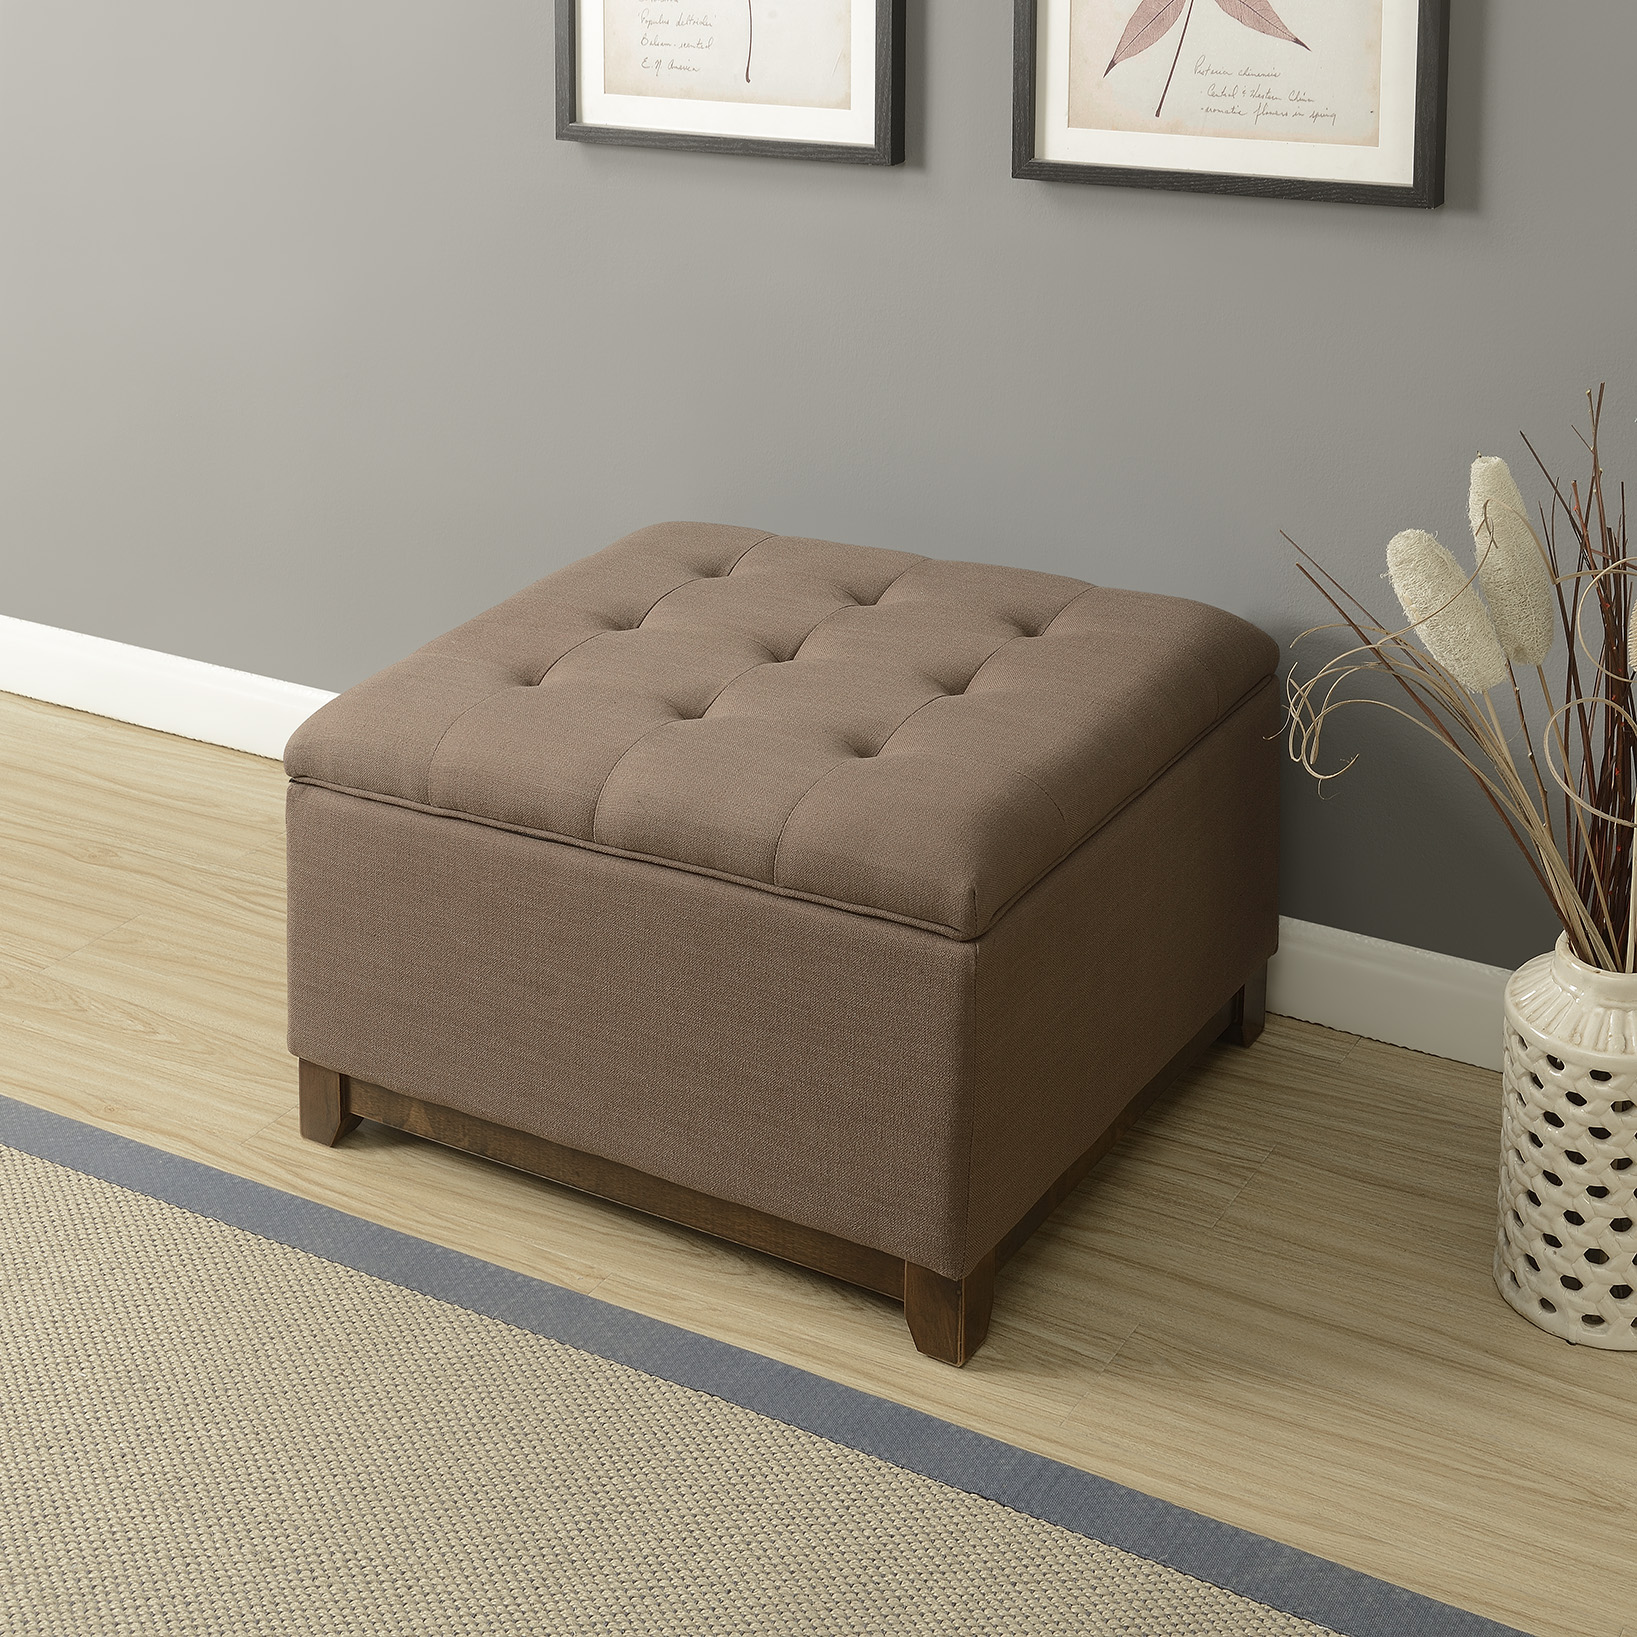 Belleze Large Ottoman Storage Table Bench Linen Tufted Footrest Seat Stool, Espresso Brown